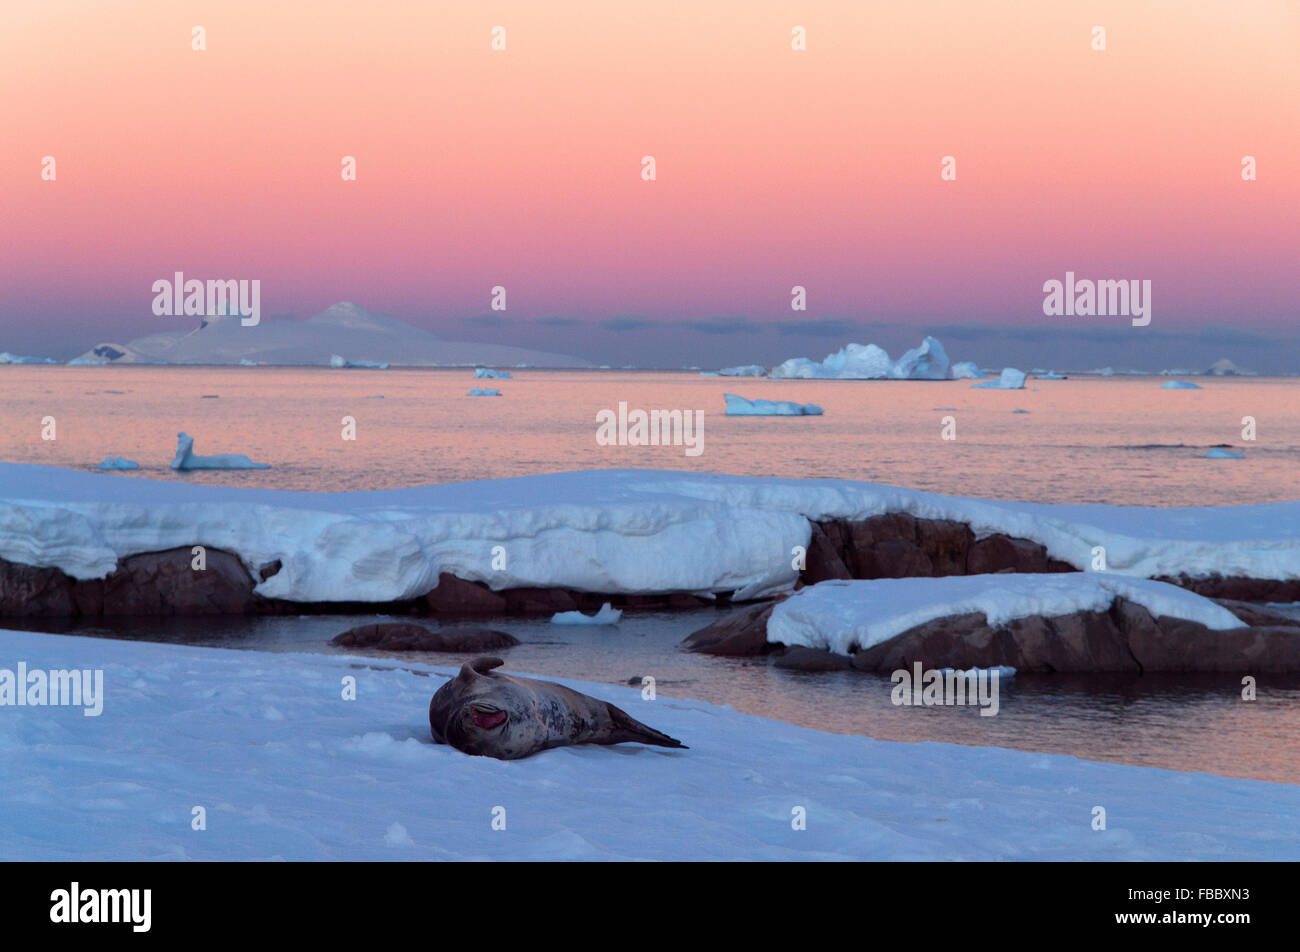 Crabeater Seal on ice and antarctic sunset - Stock Image